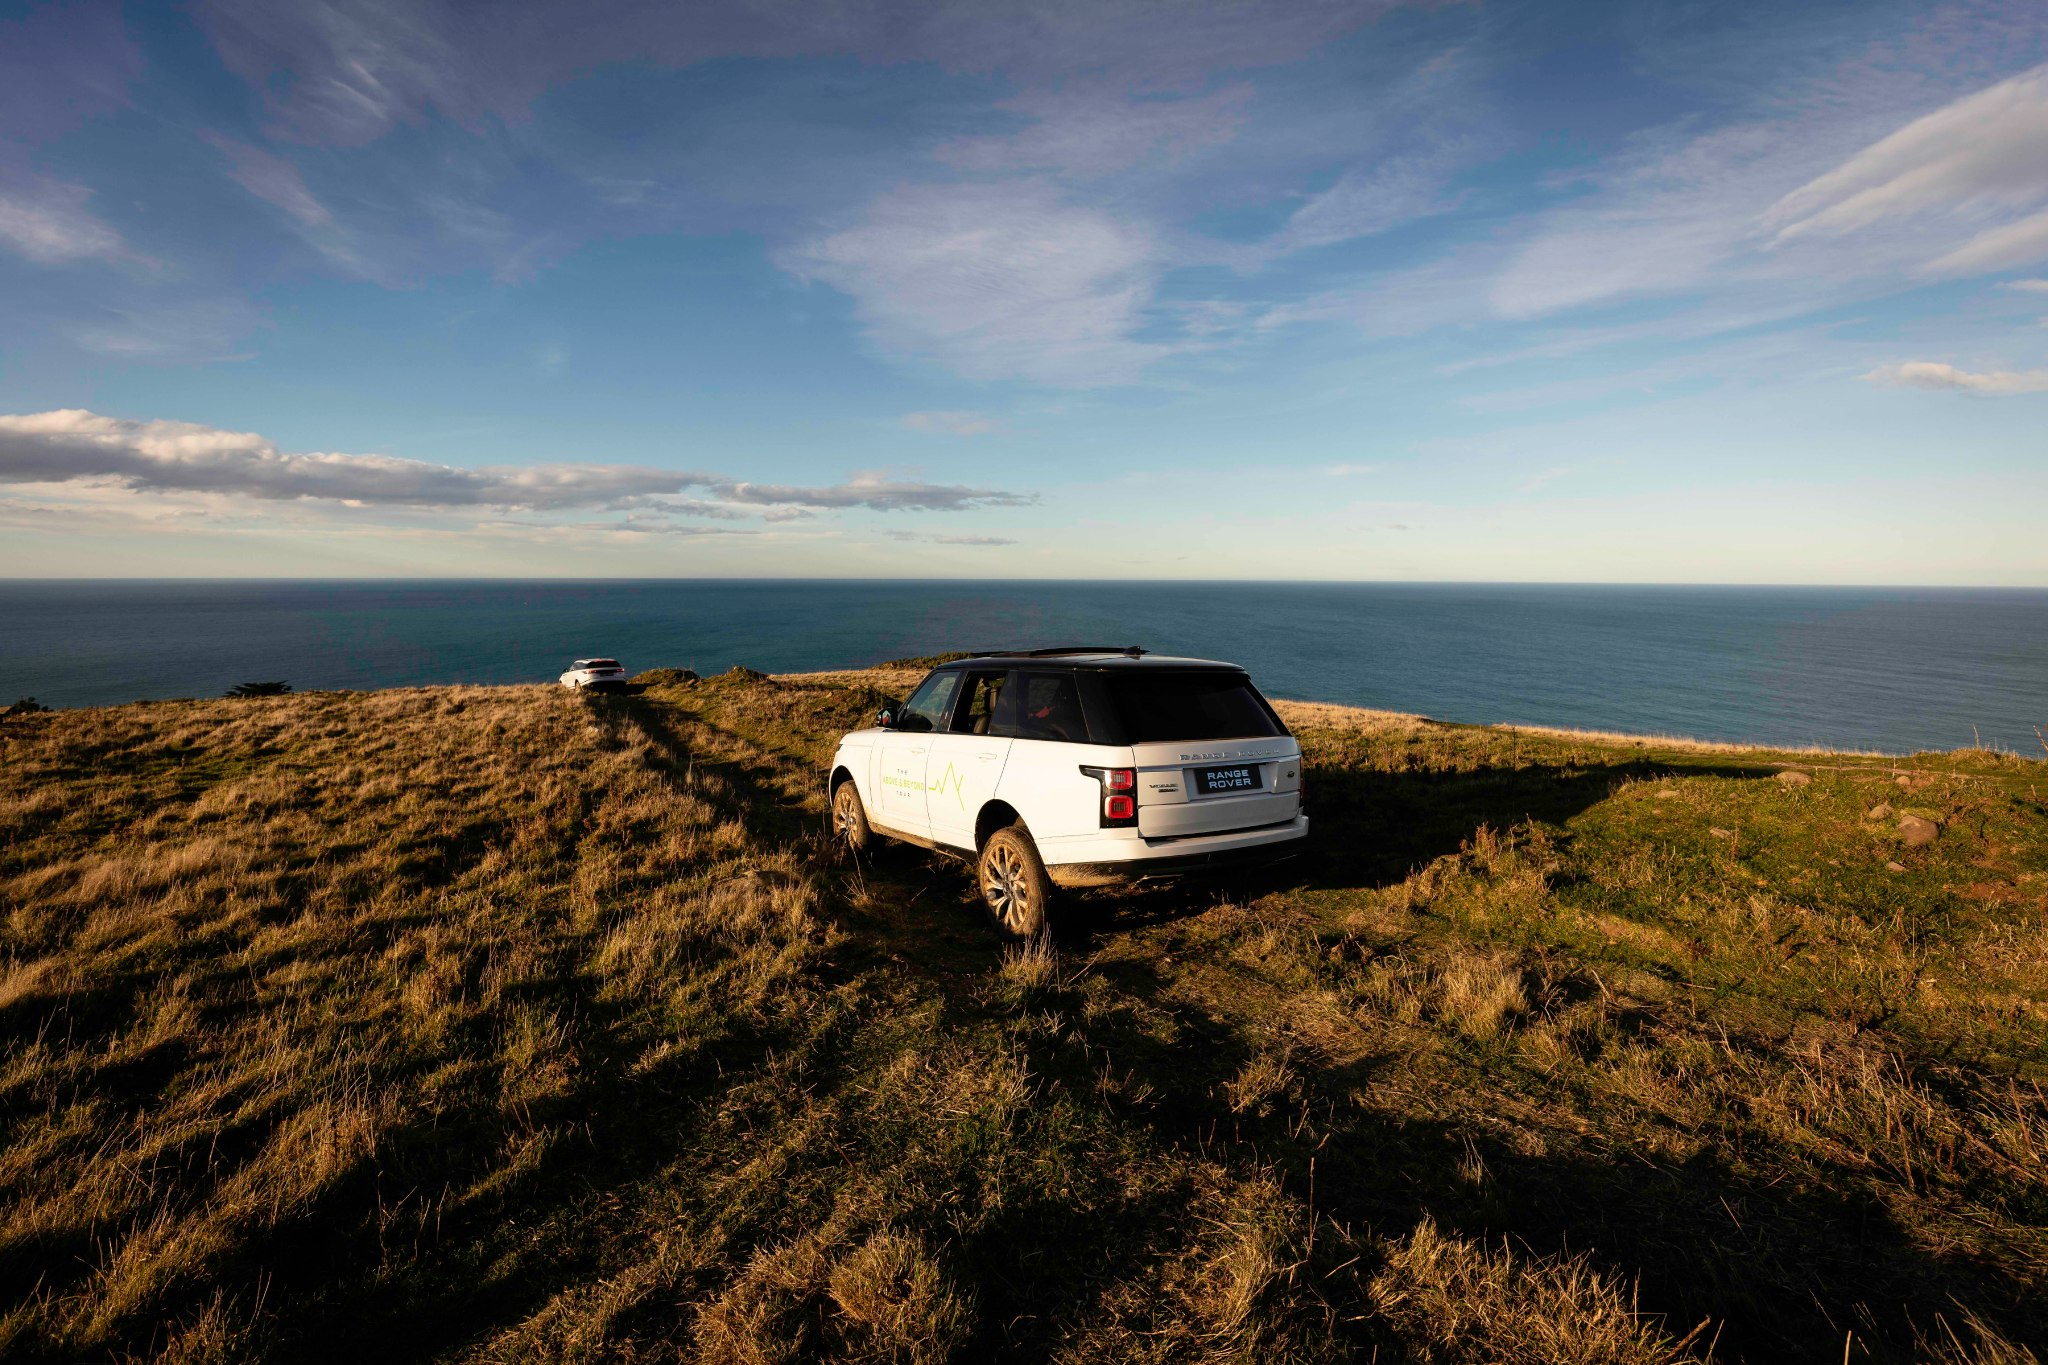 LAND_ROVER_EVENT-2-92_preview (1).jpeg